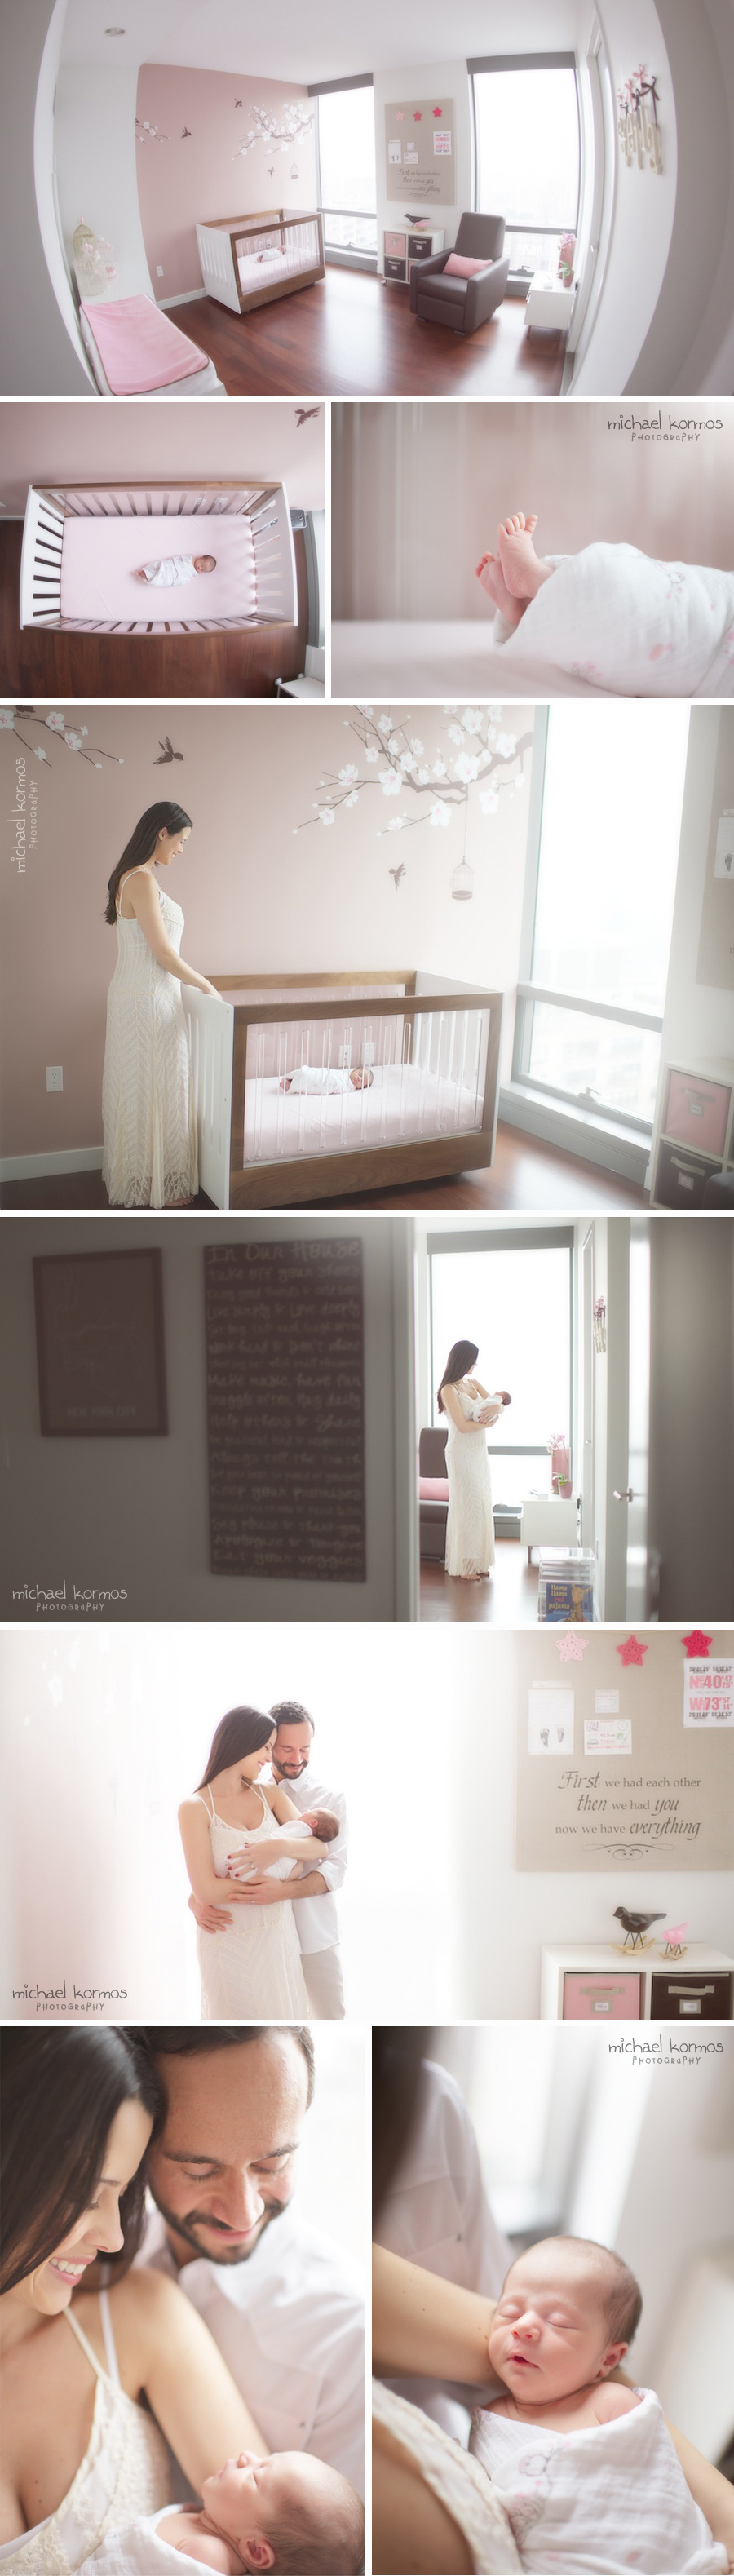 Beautifully decorated nursery with gorgeous wall mural is the perfect setting for comfortable and intimate newborn photography that is filled with emotions